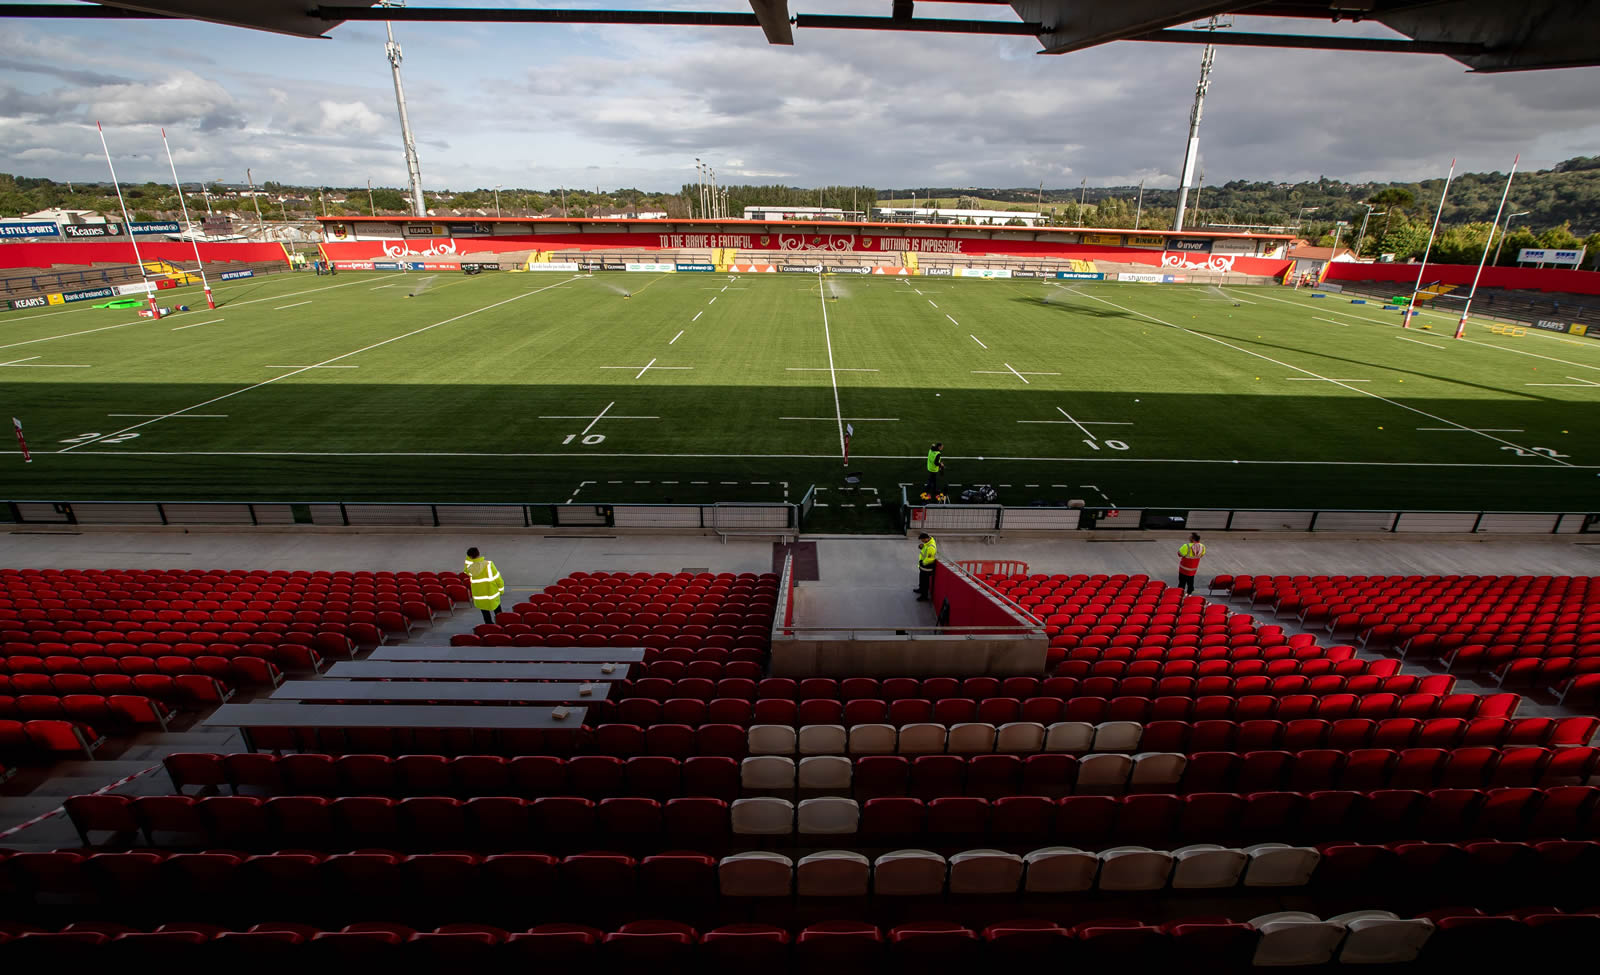 Modified 3G pitch at Irish Independent Park